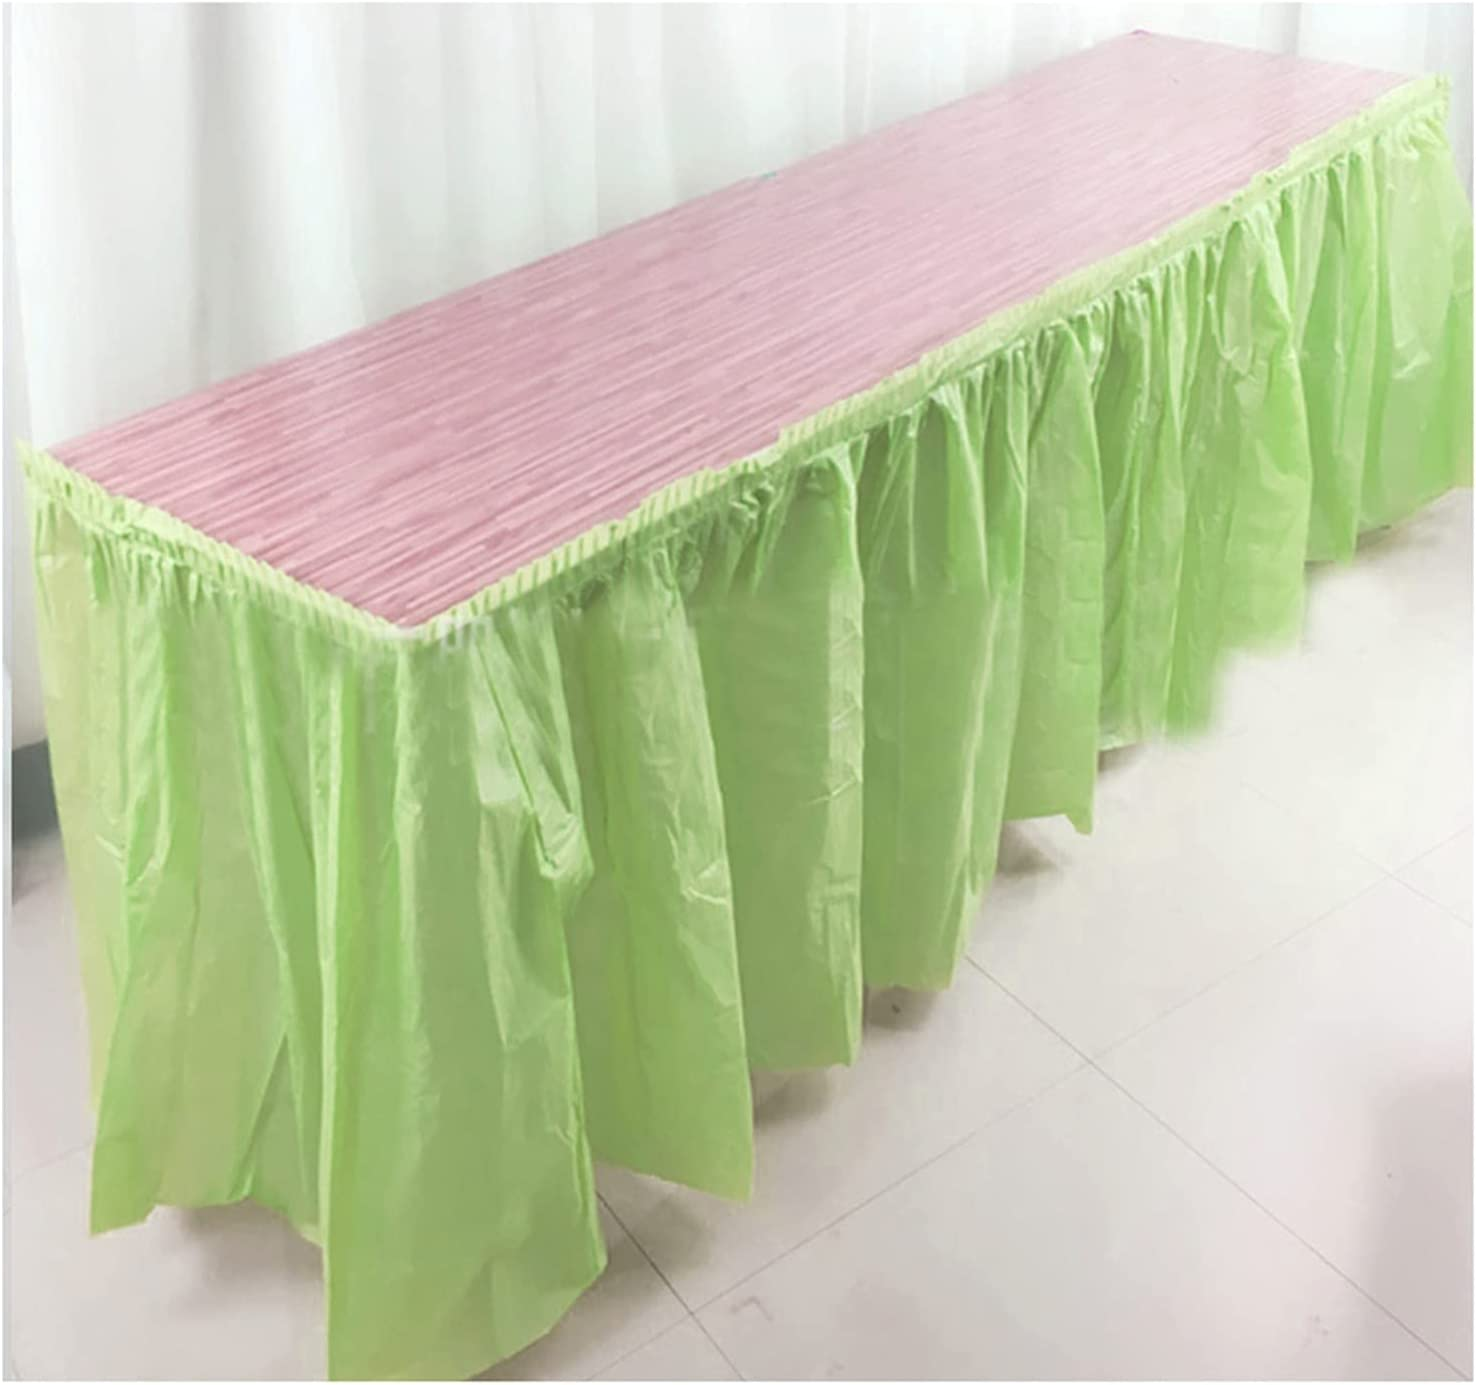 Sales of SALE items from new Deluxe works XINLEI 73X420cm Disposable Table Skirts Skirt Cove Plastic